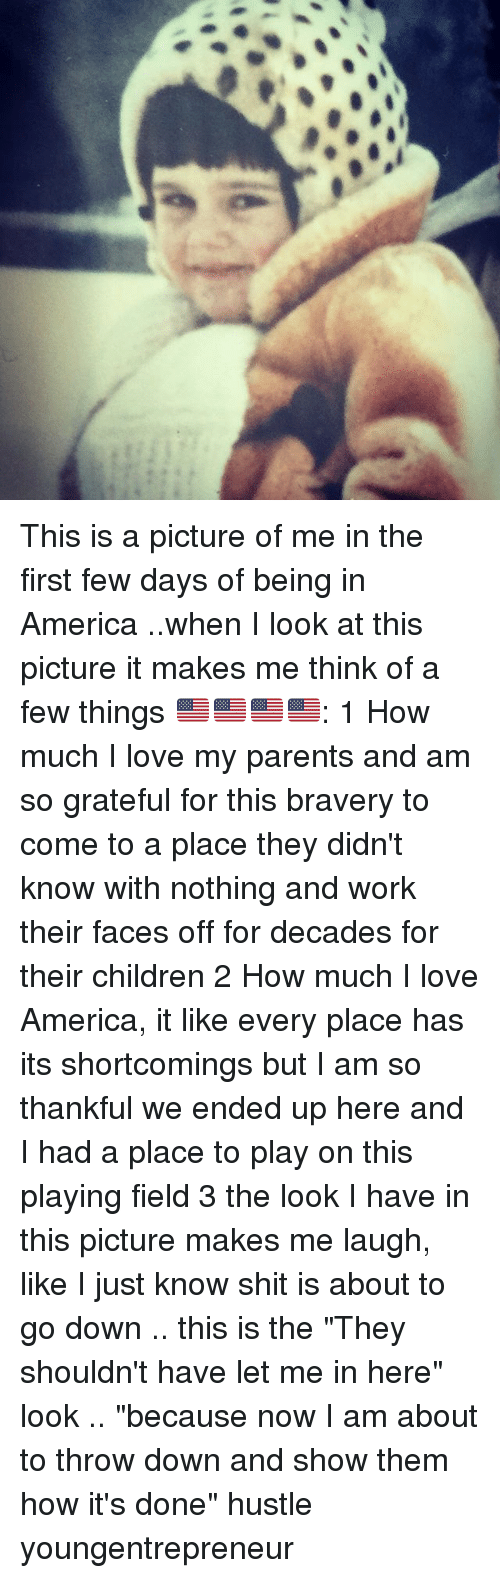 """America, Children, and Love: This is a picture of me in the first few days of being in America ..when I look at this picture it makes me think of a few things 🇺🇸🇺🇸🇺🇸🇺🇸: 1 How much I love my parents and am so grateful for this bravery to come to a place they didn't know with nothing and work their faces off for decades for their children 2 How much I love America, it like every place has its shortcomings but I am so thankful we ended up here and I had a place to play on this playing field 3 the look I have in this picture makes me laugh, like I just know shit is about to go down .. this is the """"They shouldn't have let me in here"""" look .. """"because now I am about to throw down and show them how it's done"""" hustle youngentrepreneur"""